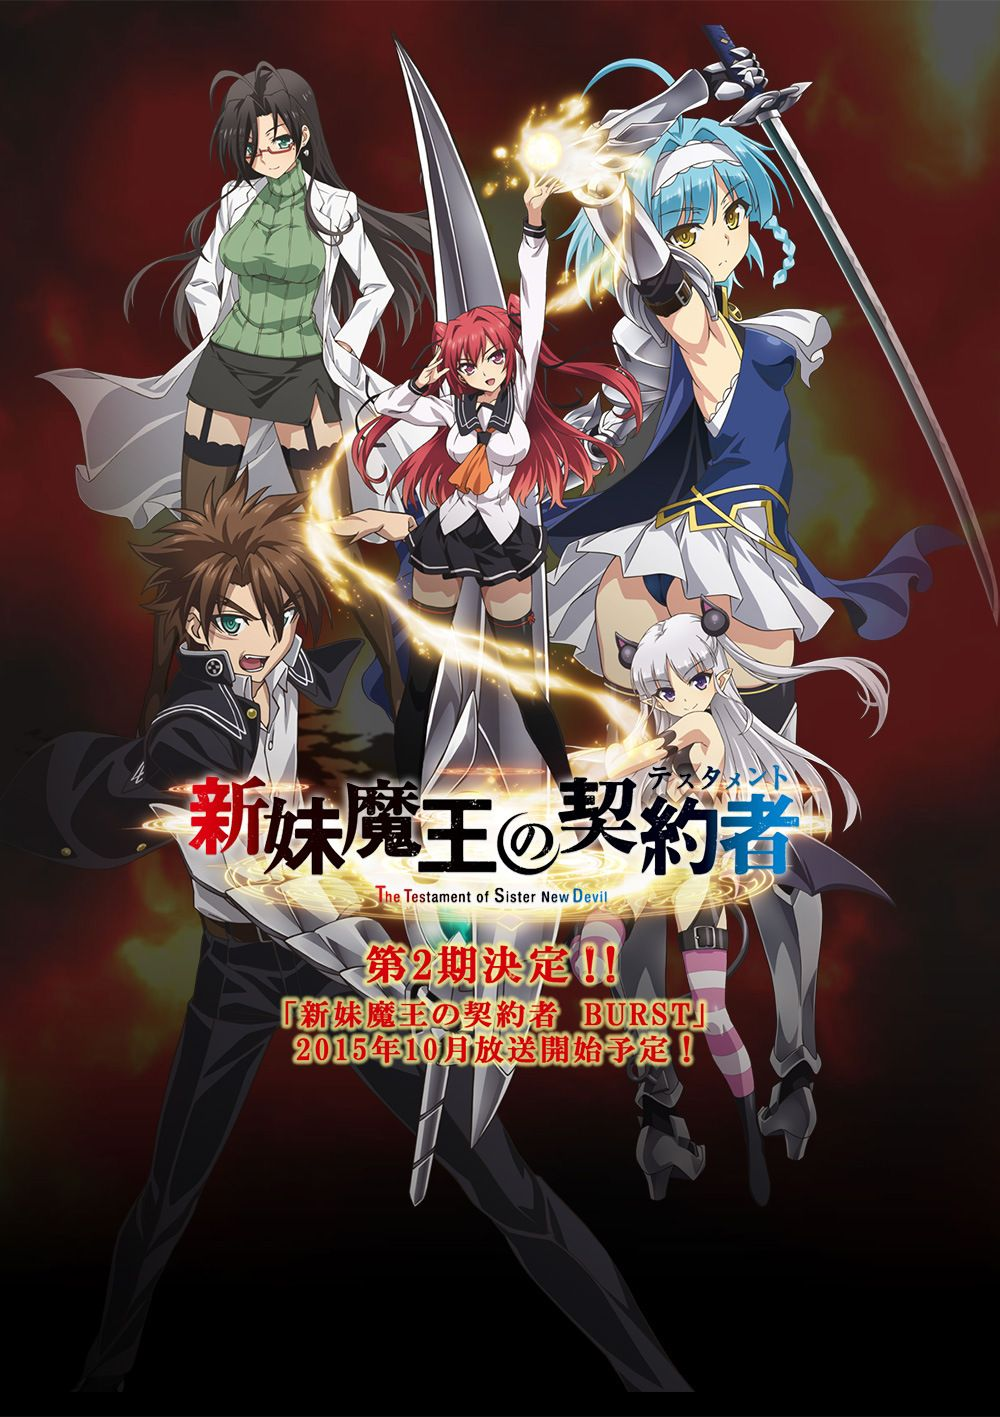 The final episode of the anime adaptation of Tesuto Uesu